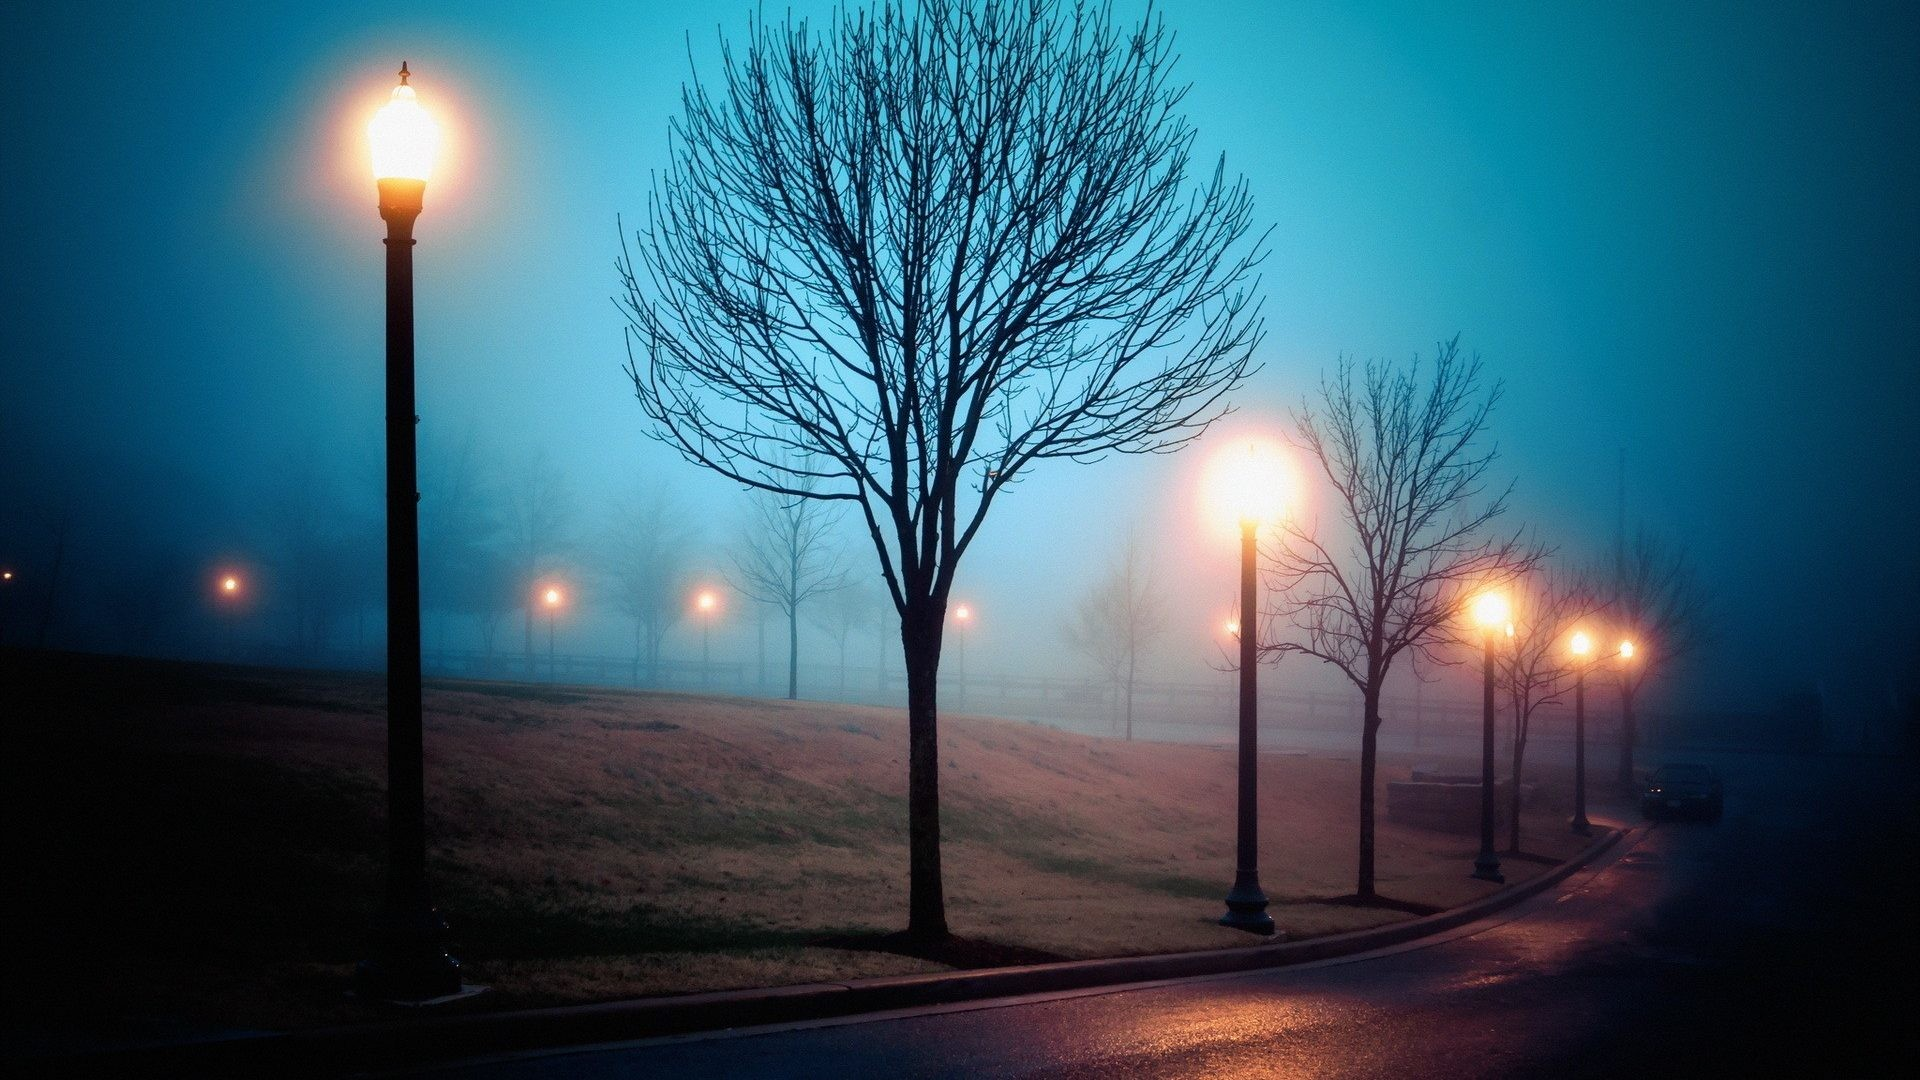 Scenary Tag – Nature Street Winter Sleep Tree Night Lights Park Scenary  Richmond Fog Atmosphere Walking